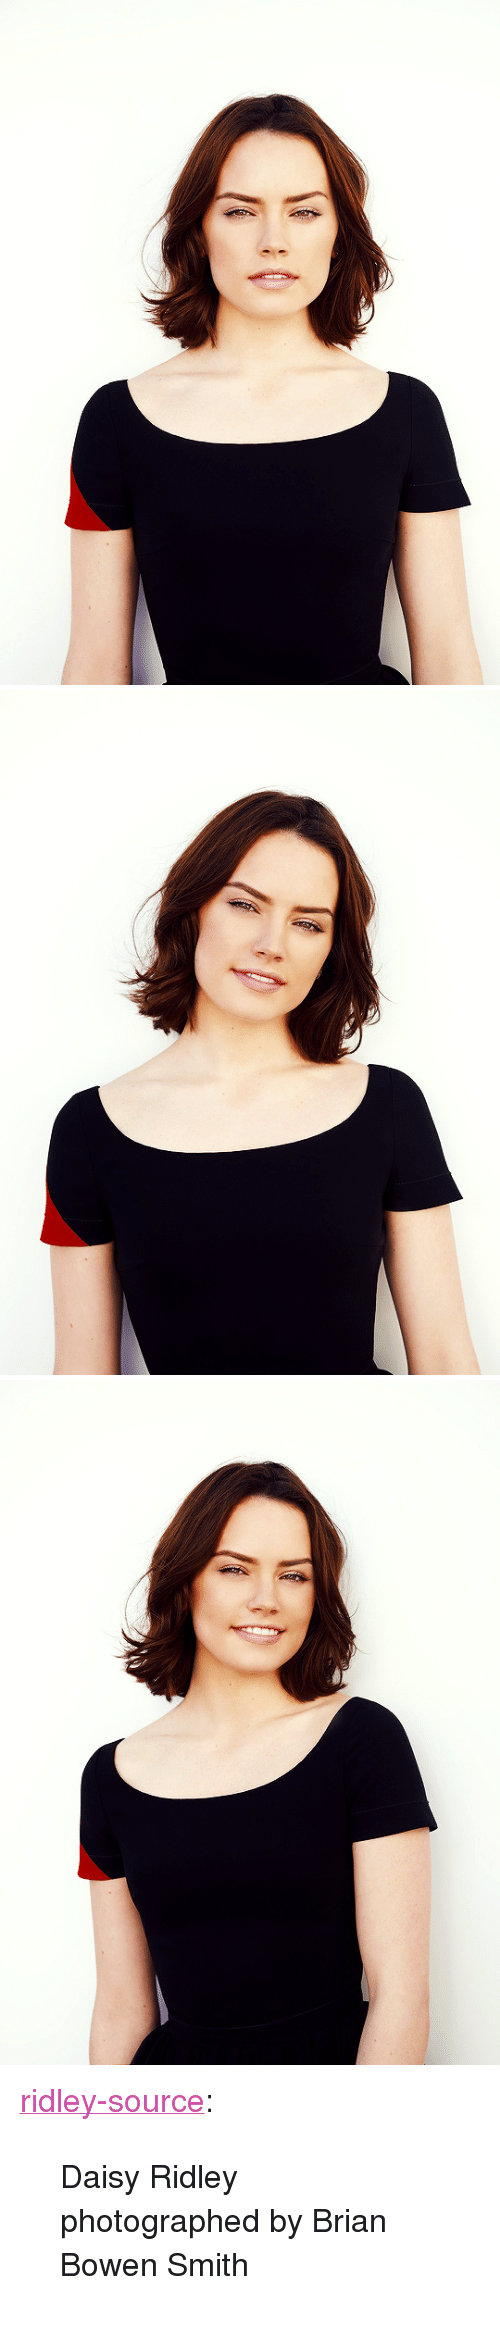 """Daisy Ridley: 0 <p><a href=""""https://ridley-source.tumblr.com/post/170763588899/daisy-ridley-photographed-by-brian-bowen-smith"""" class=""""tumblr_blog"""">ridley-source</a>:</p><blockquote><p>  Daisy Ridley photographed by Brian Bowen Smith <br/></p></blockquote>"""